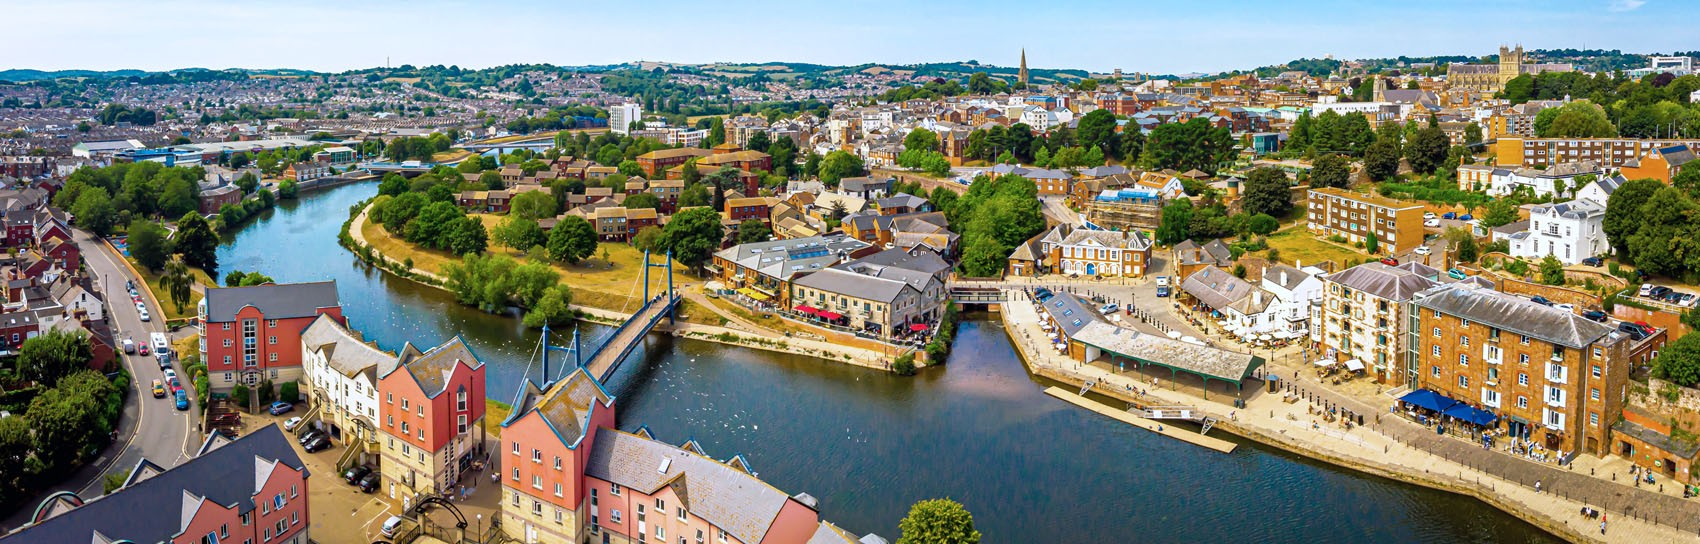 An aerial view of Exeter Quay and the River Exe. Photograph by ALEXEY FEDORENKO